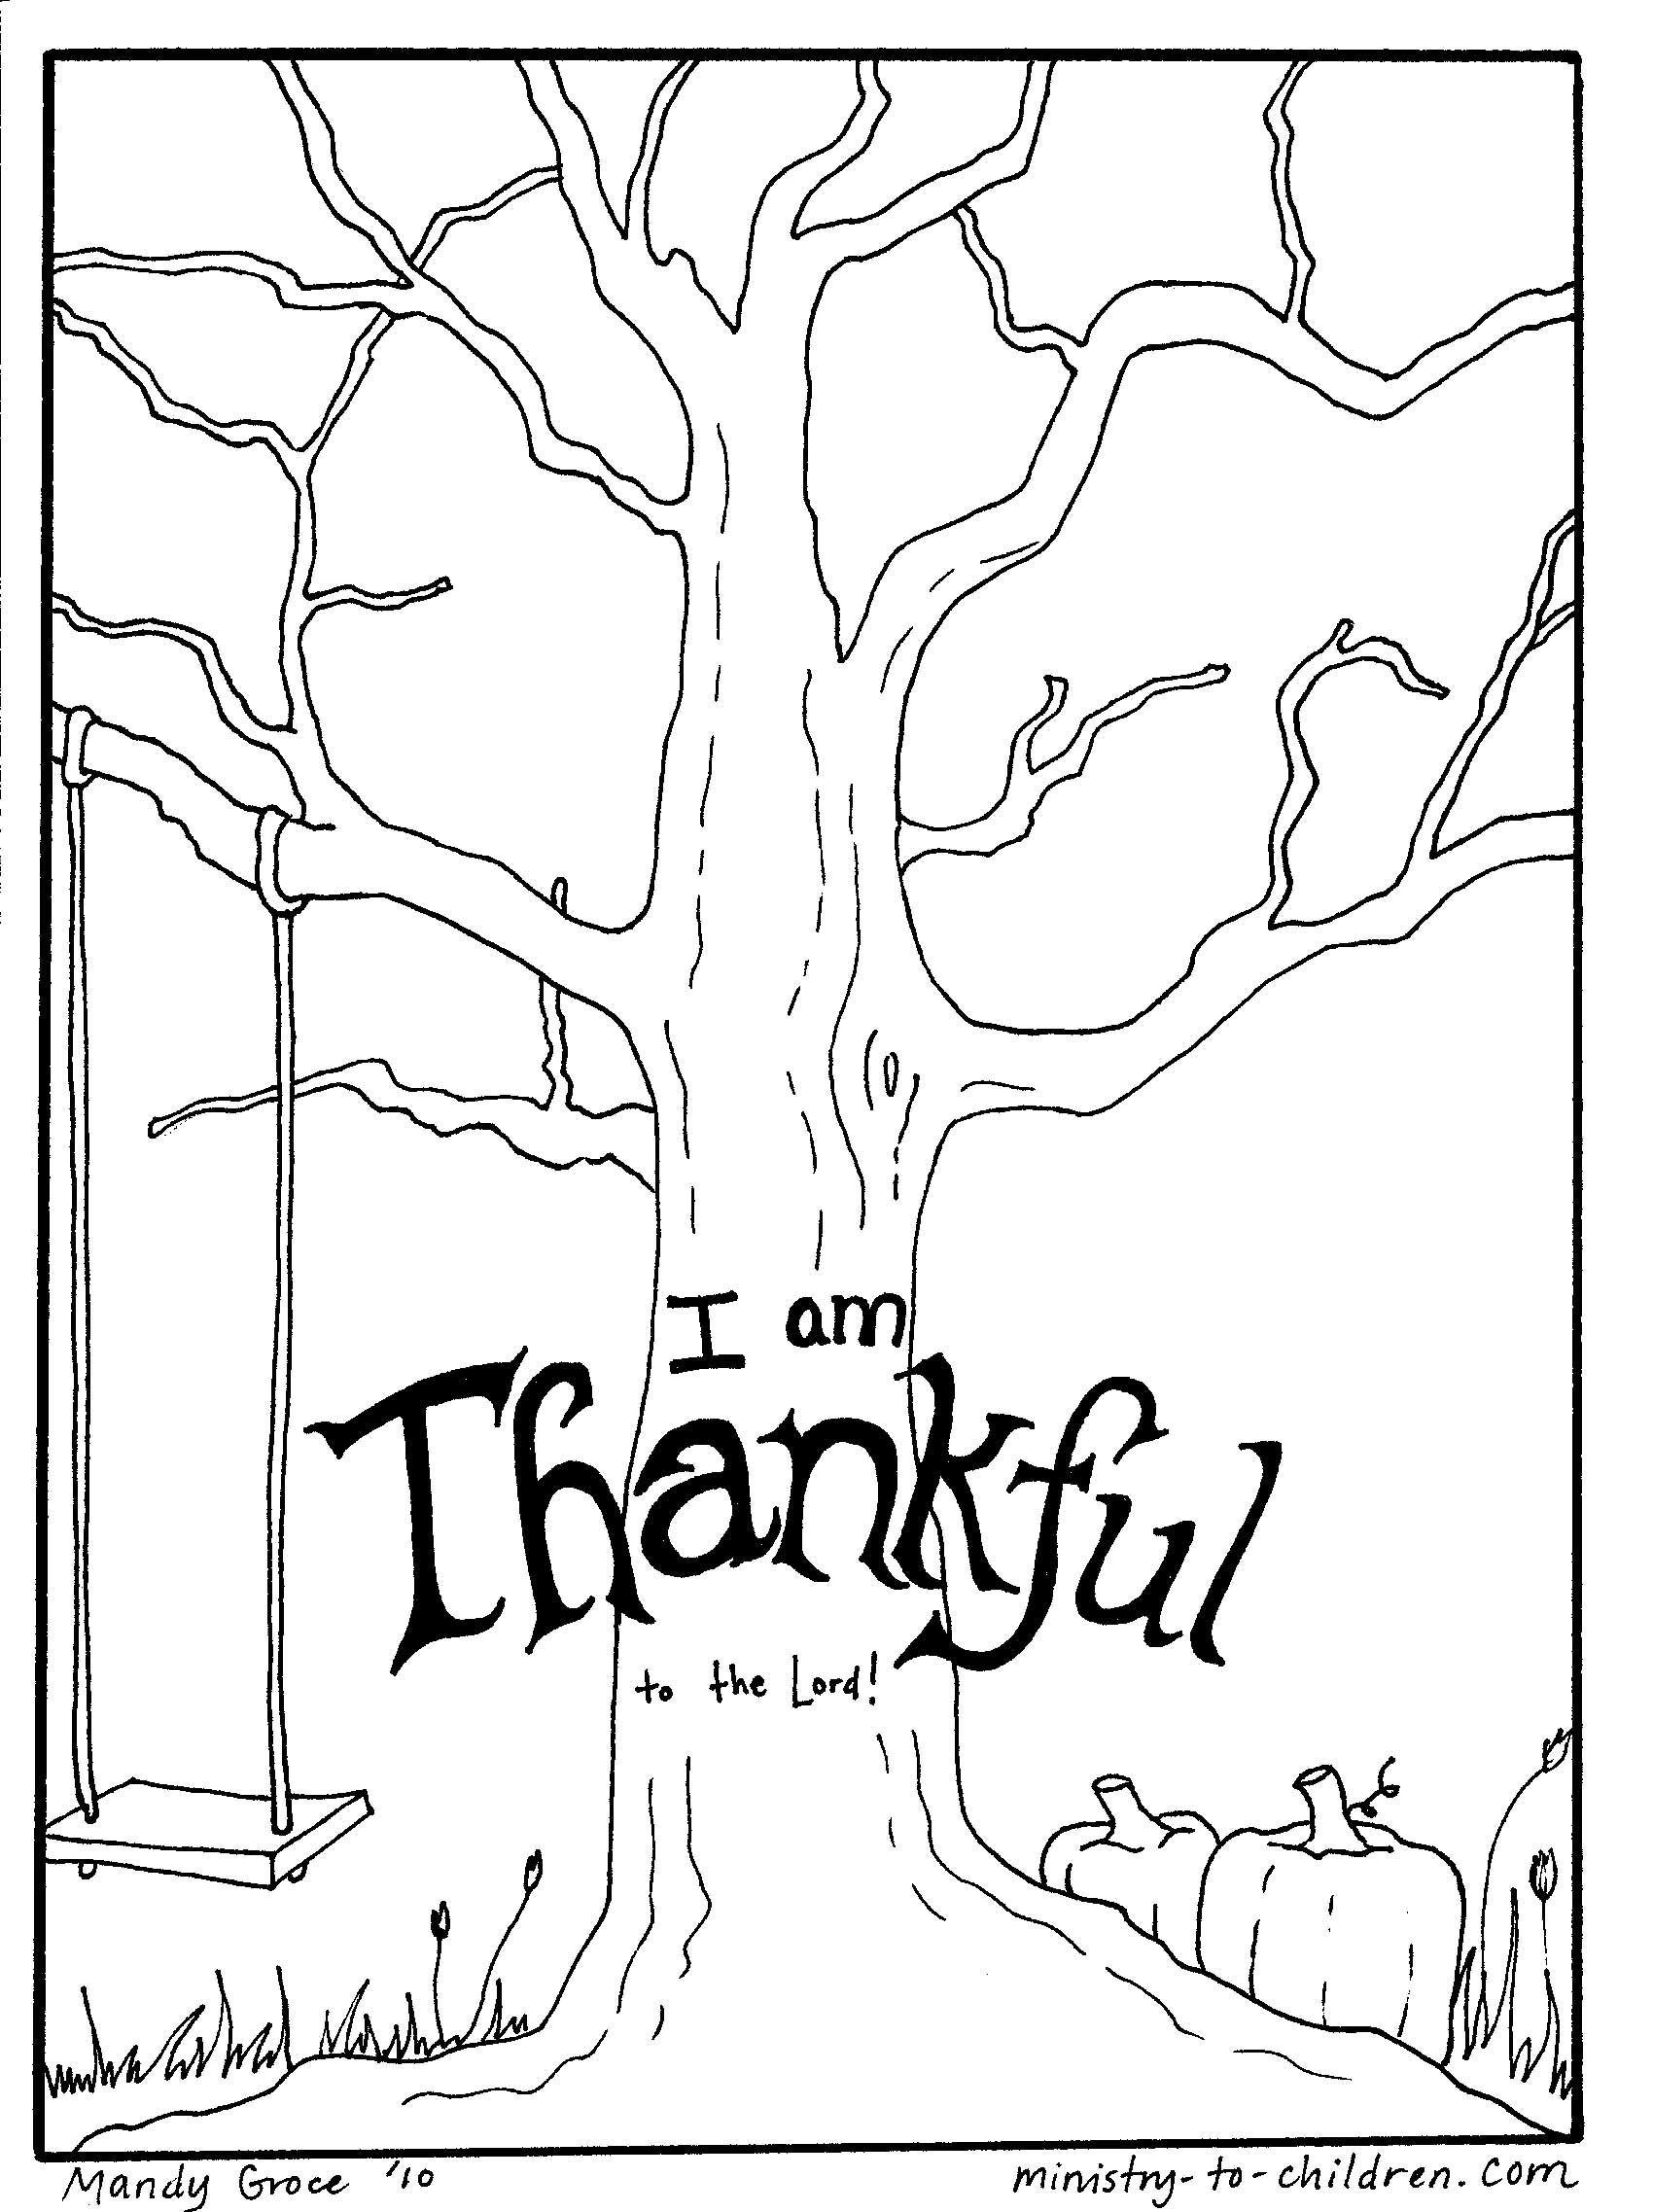 free thanksgiving coloring pages for preschoolers Download-Printable Thanksgiving Coloring Pages for toddlers Free Printable Coloring Pages Autumn 2019 Thanksgiving Coloring Page 5-m